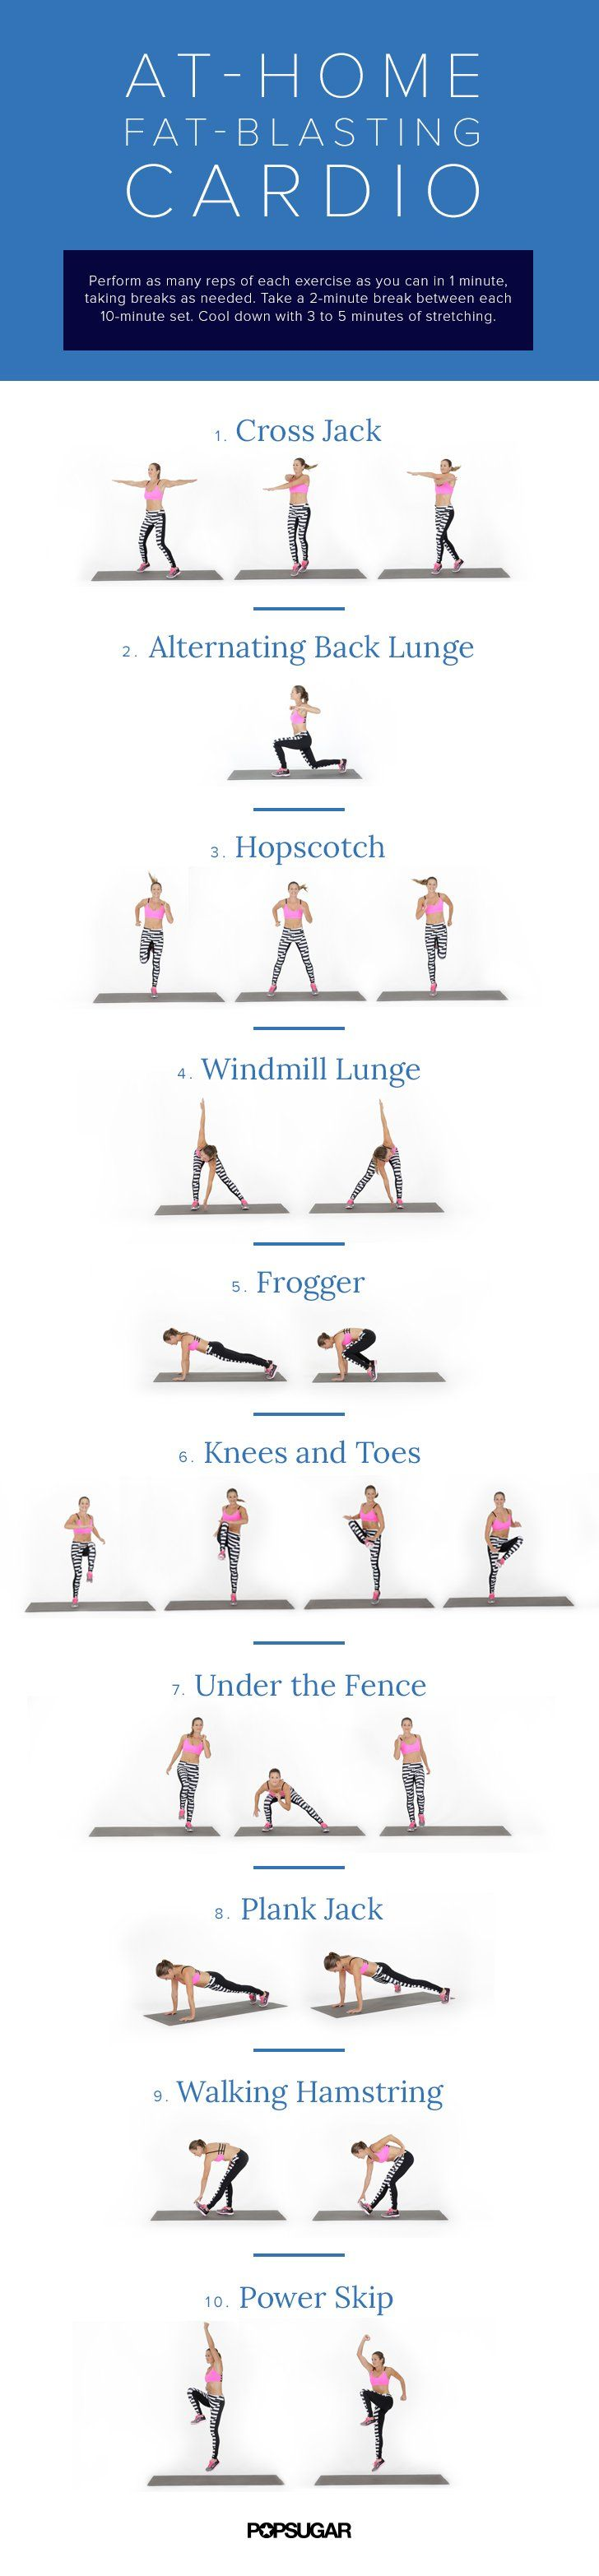 Best 25 Cardio At Home Ideas On Pinterest Cardio Workouts Cardio And At Home Workouts